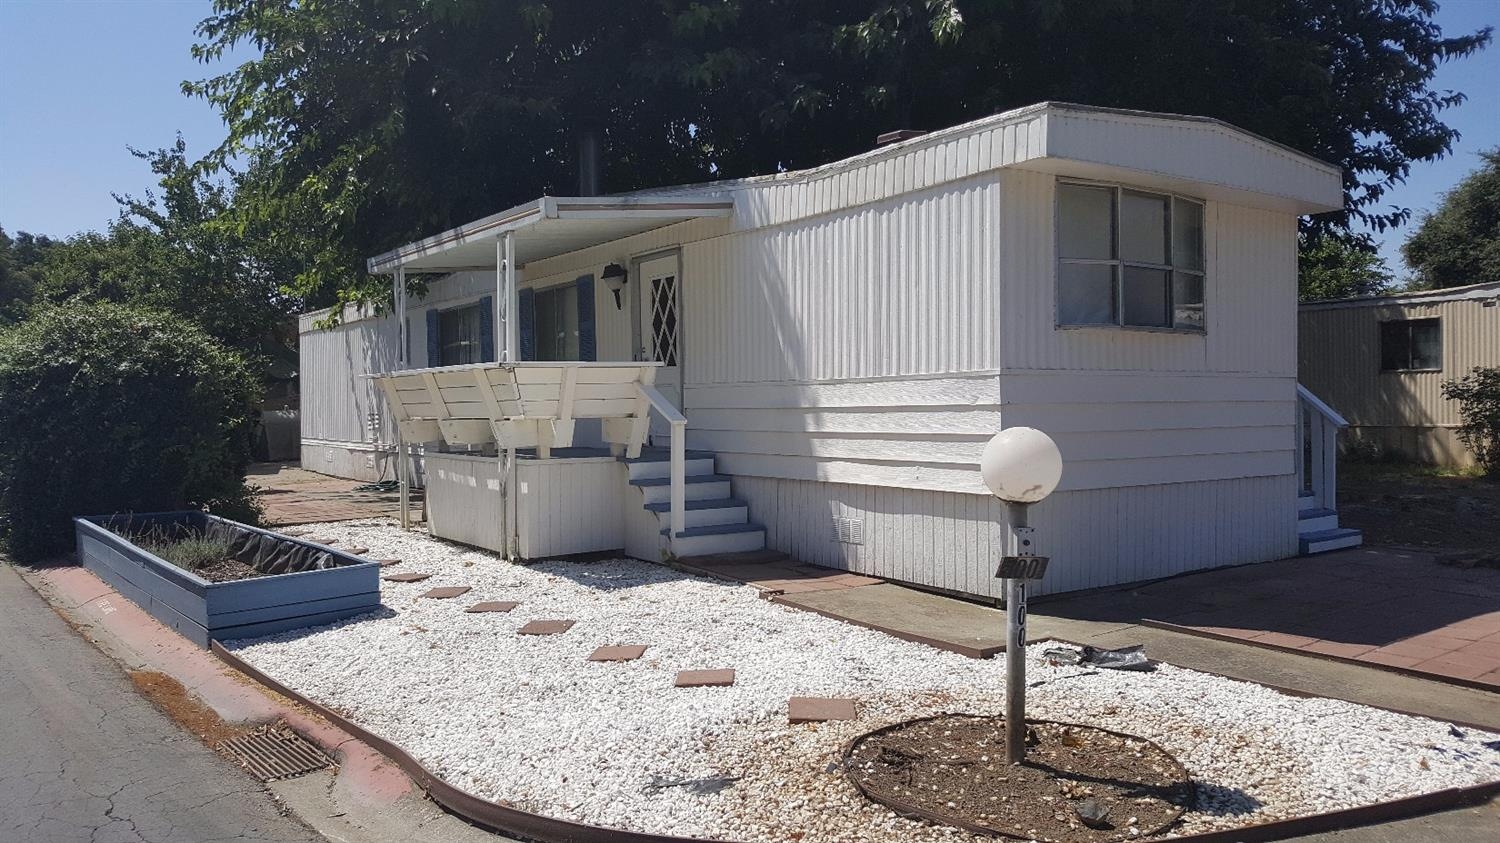 $35,000 - 2Br/1Ba -  for Sale in Davis